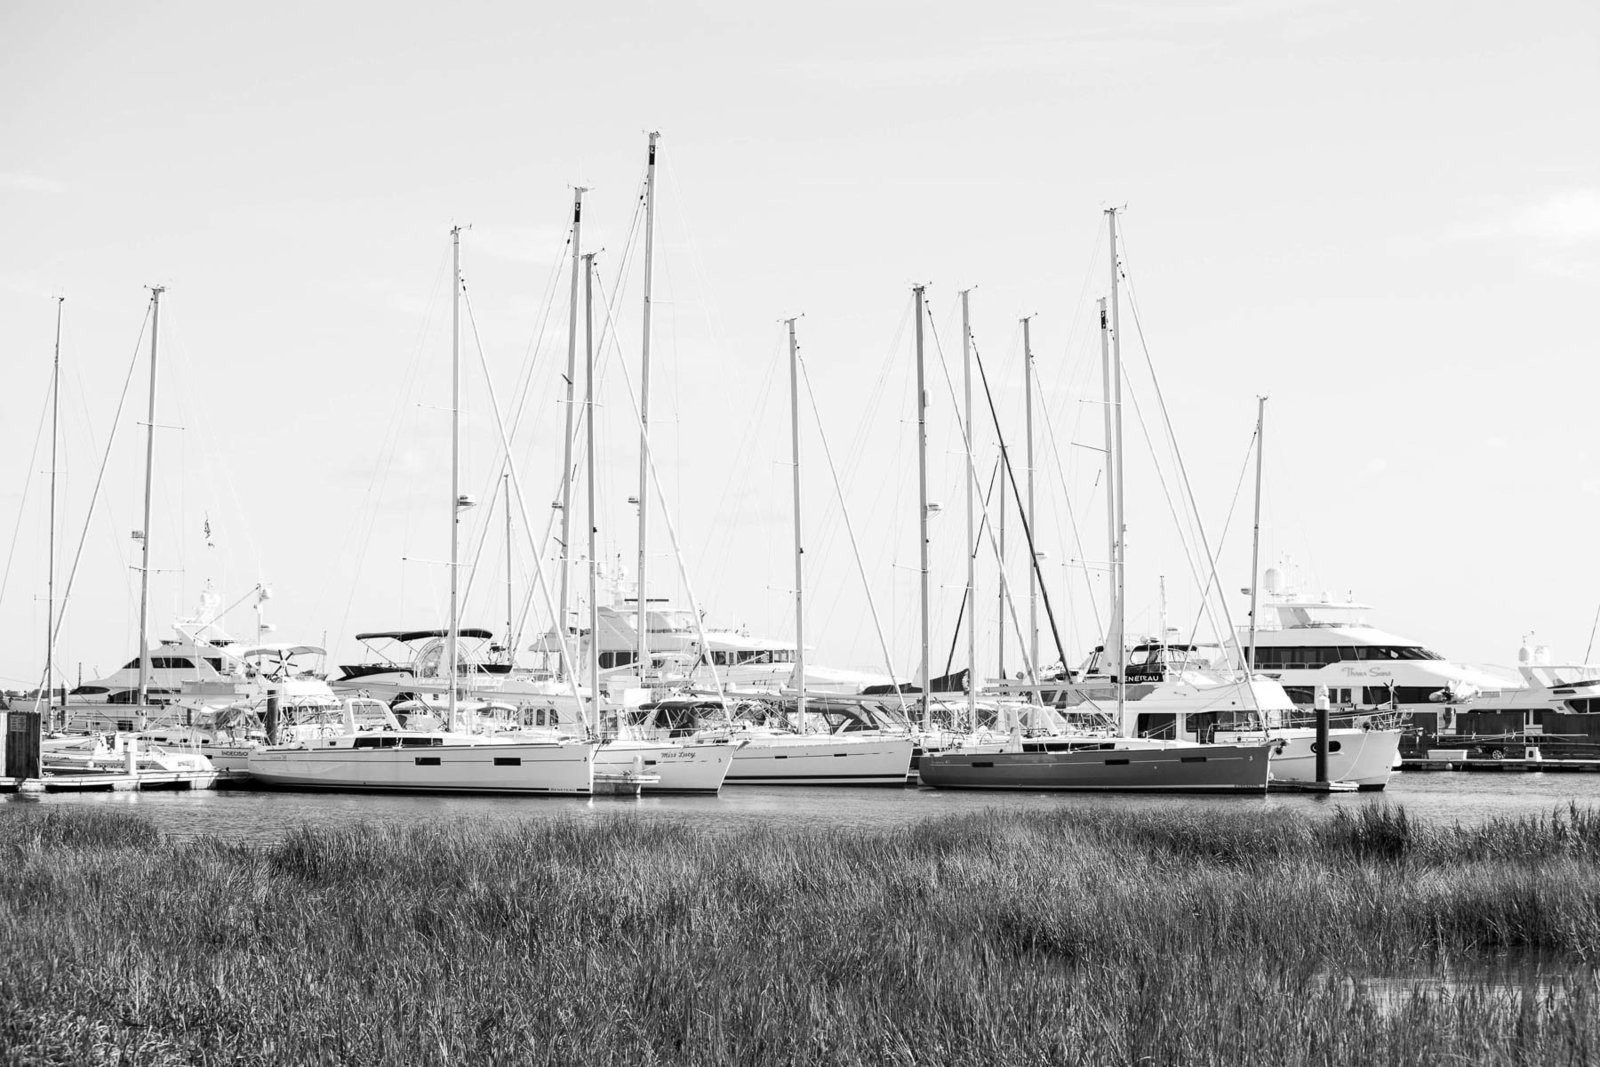 Boats are among the marsh, Rice Mill Building, Charleston, South Carolina